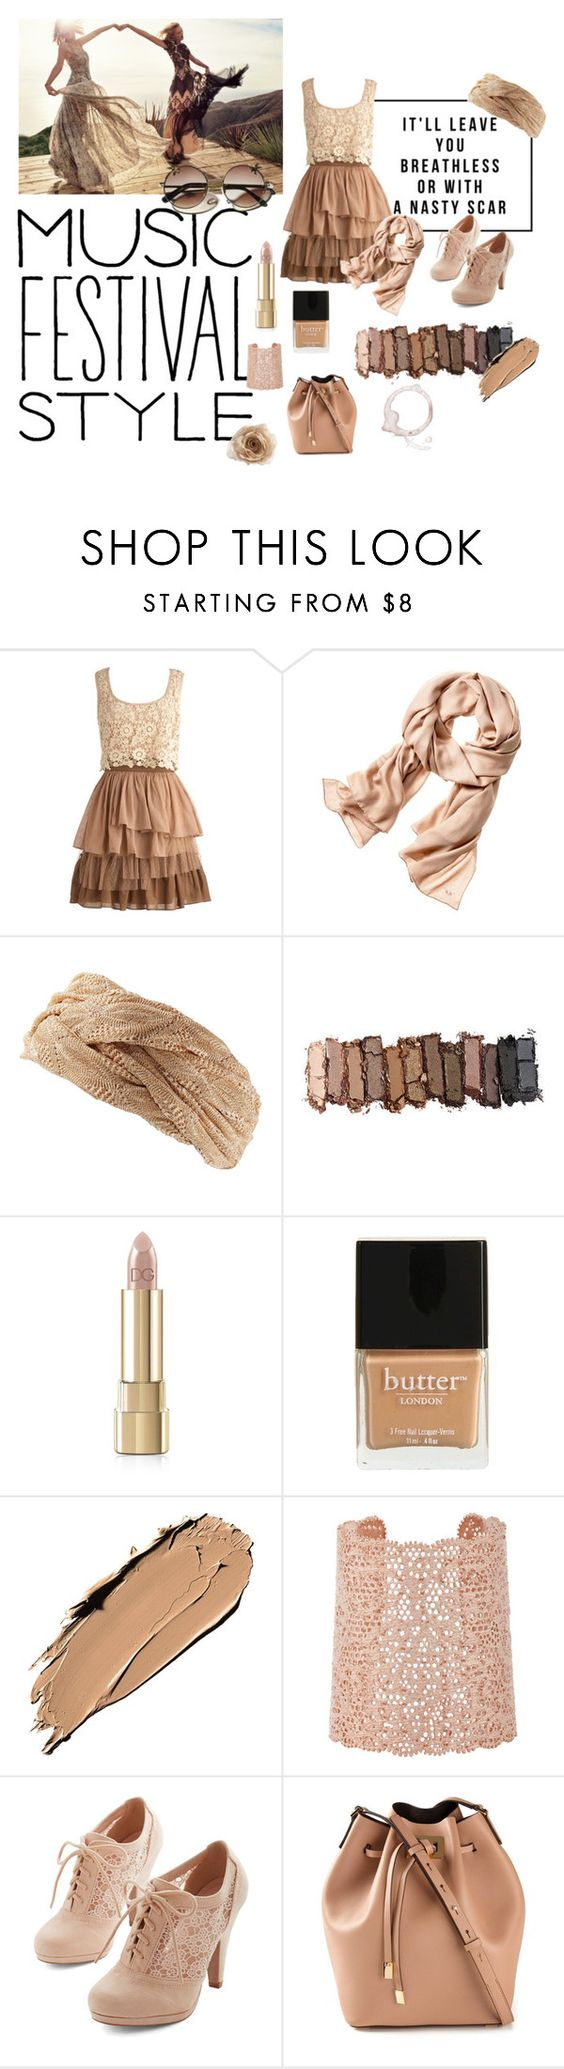 """Cherry Lips, Crystal Skies"" by andfourblueyes ❤ liked on Polyvore featuring Reed Krakoff, Missoni, Urban Decay, Dolce&Gabbana, Butter London, Maybelline, Aurélie Bidermann, Michael Kors, contestentry and musicfestivalstyle"